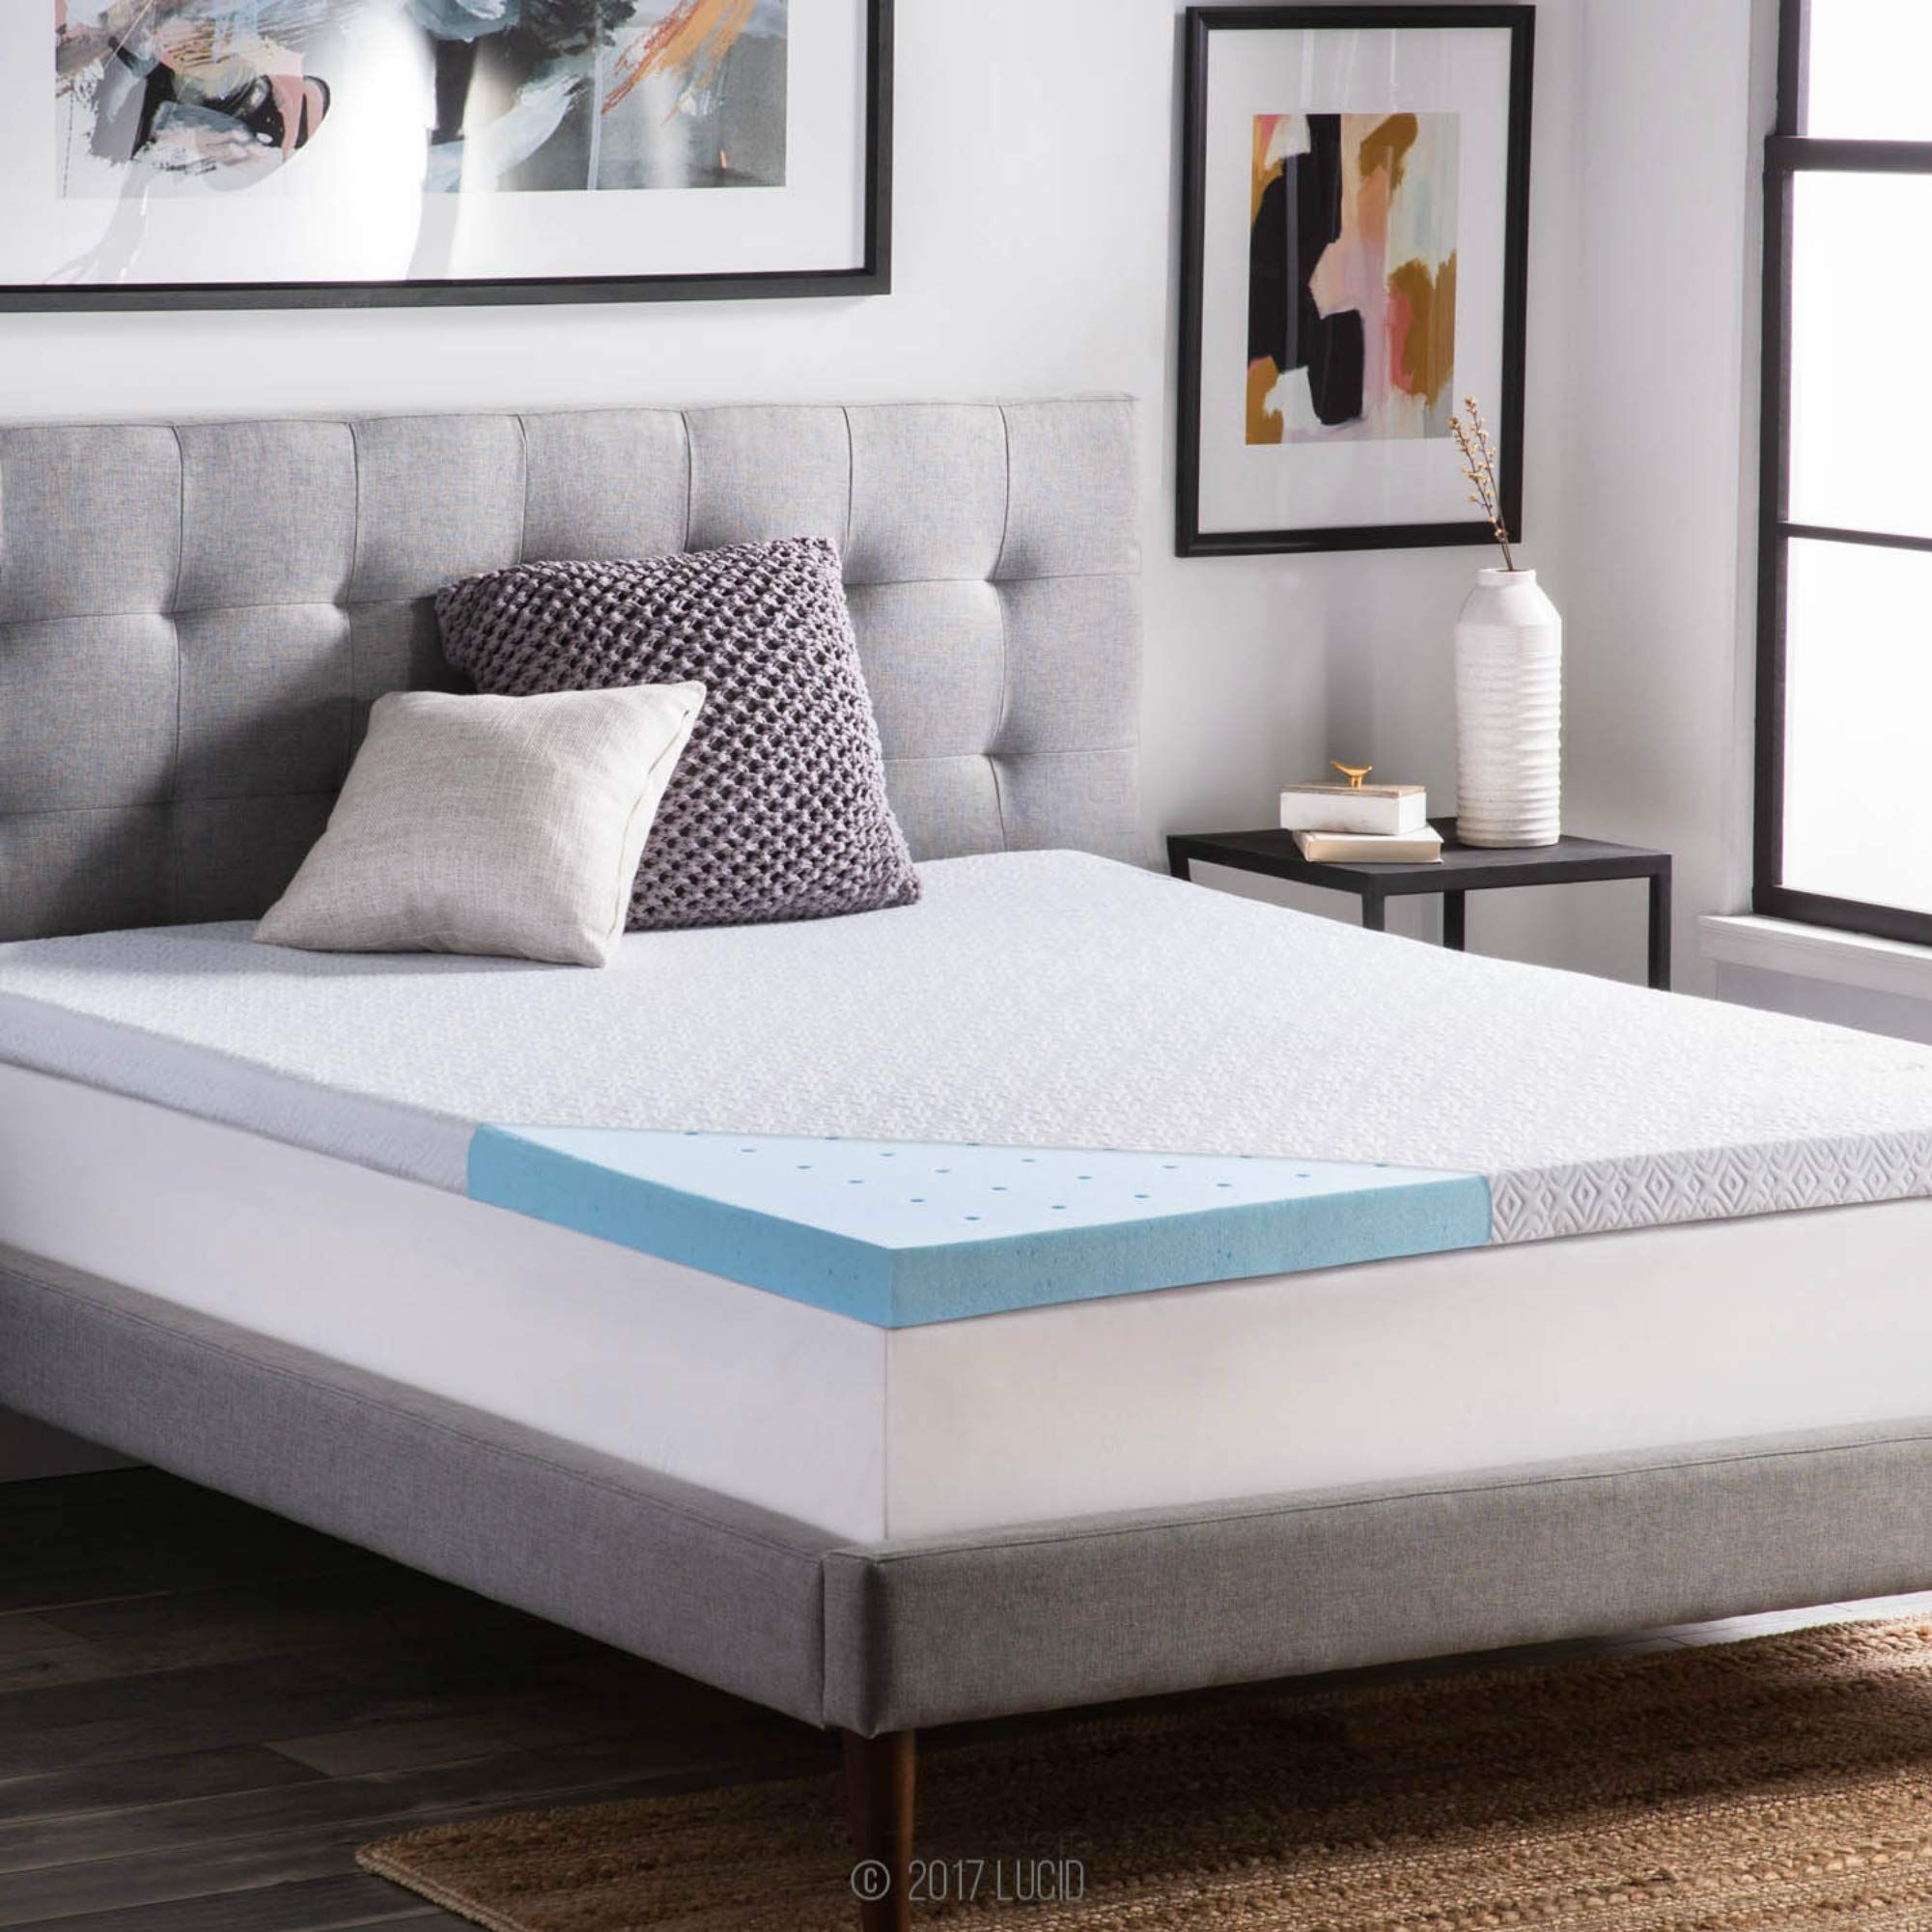 Lucid 2 5 Inch Gel Infused Ventilated Memory Foam Mattress Topper With Removable Tencel B With Images Memory Foam Mattress Topper Foam Mattress Topper Memory Foam Mattress